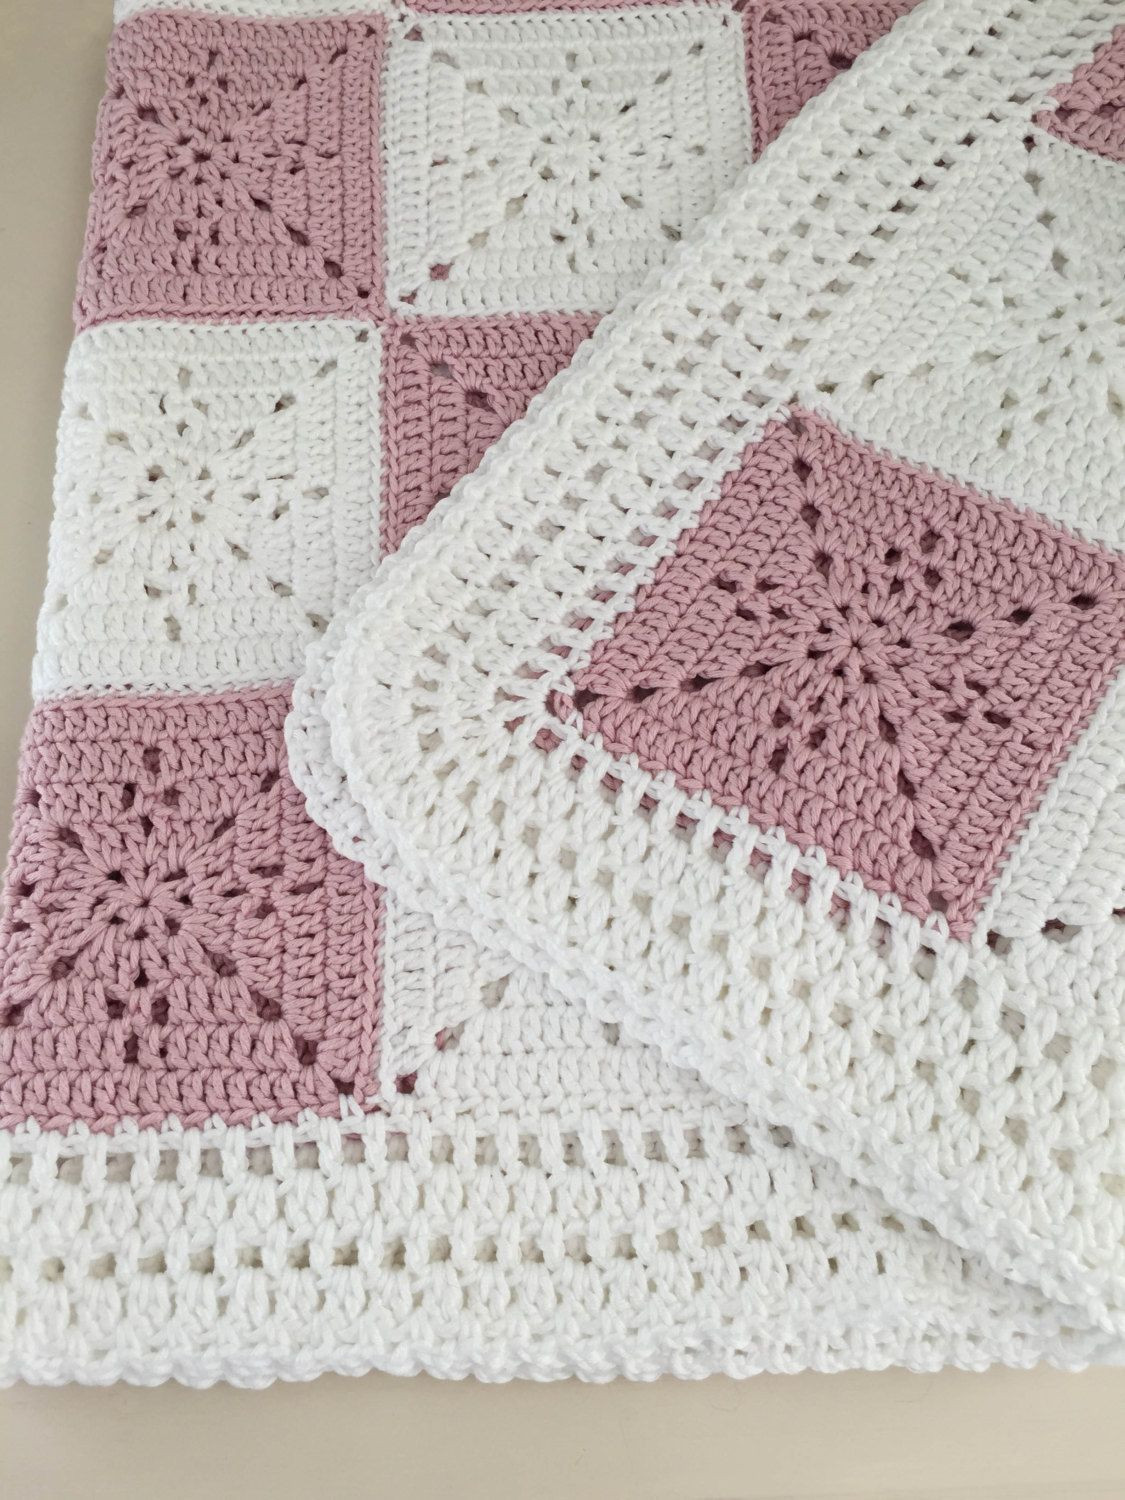 Beautiful Crochet Blanket Pattern Arielle S Square Crochet Baby Crochet Square Blanket Patterns Of Lovely 43 Pictures Crochet Square Blanket Patterns